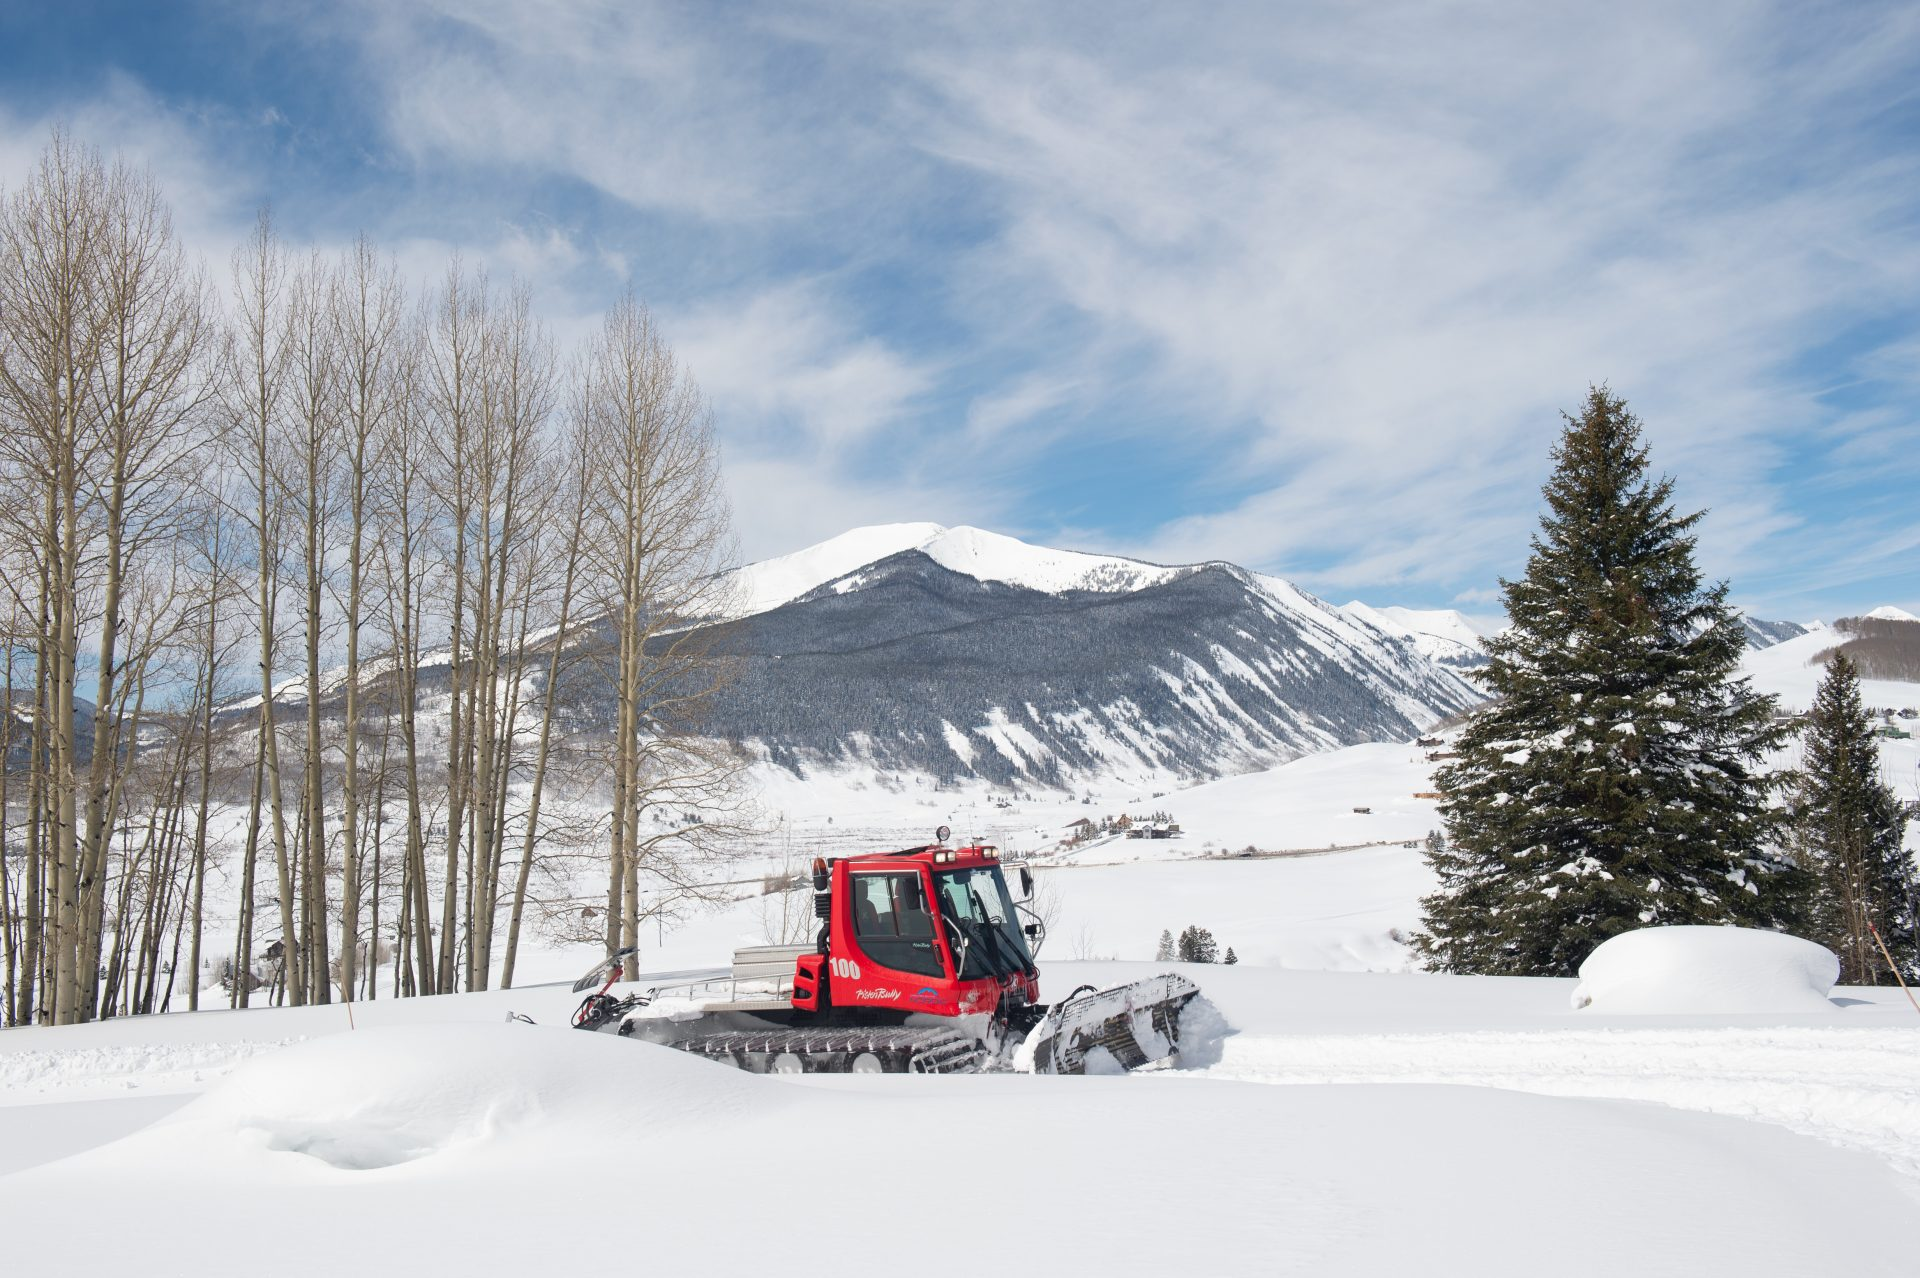 Snow cat grooming trails with Mt Emmons in background